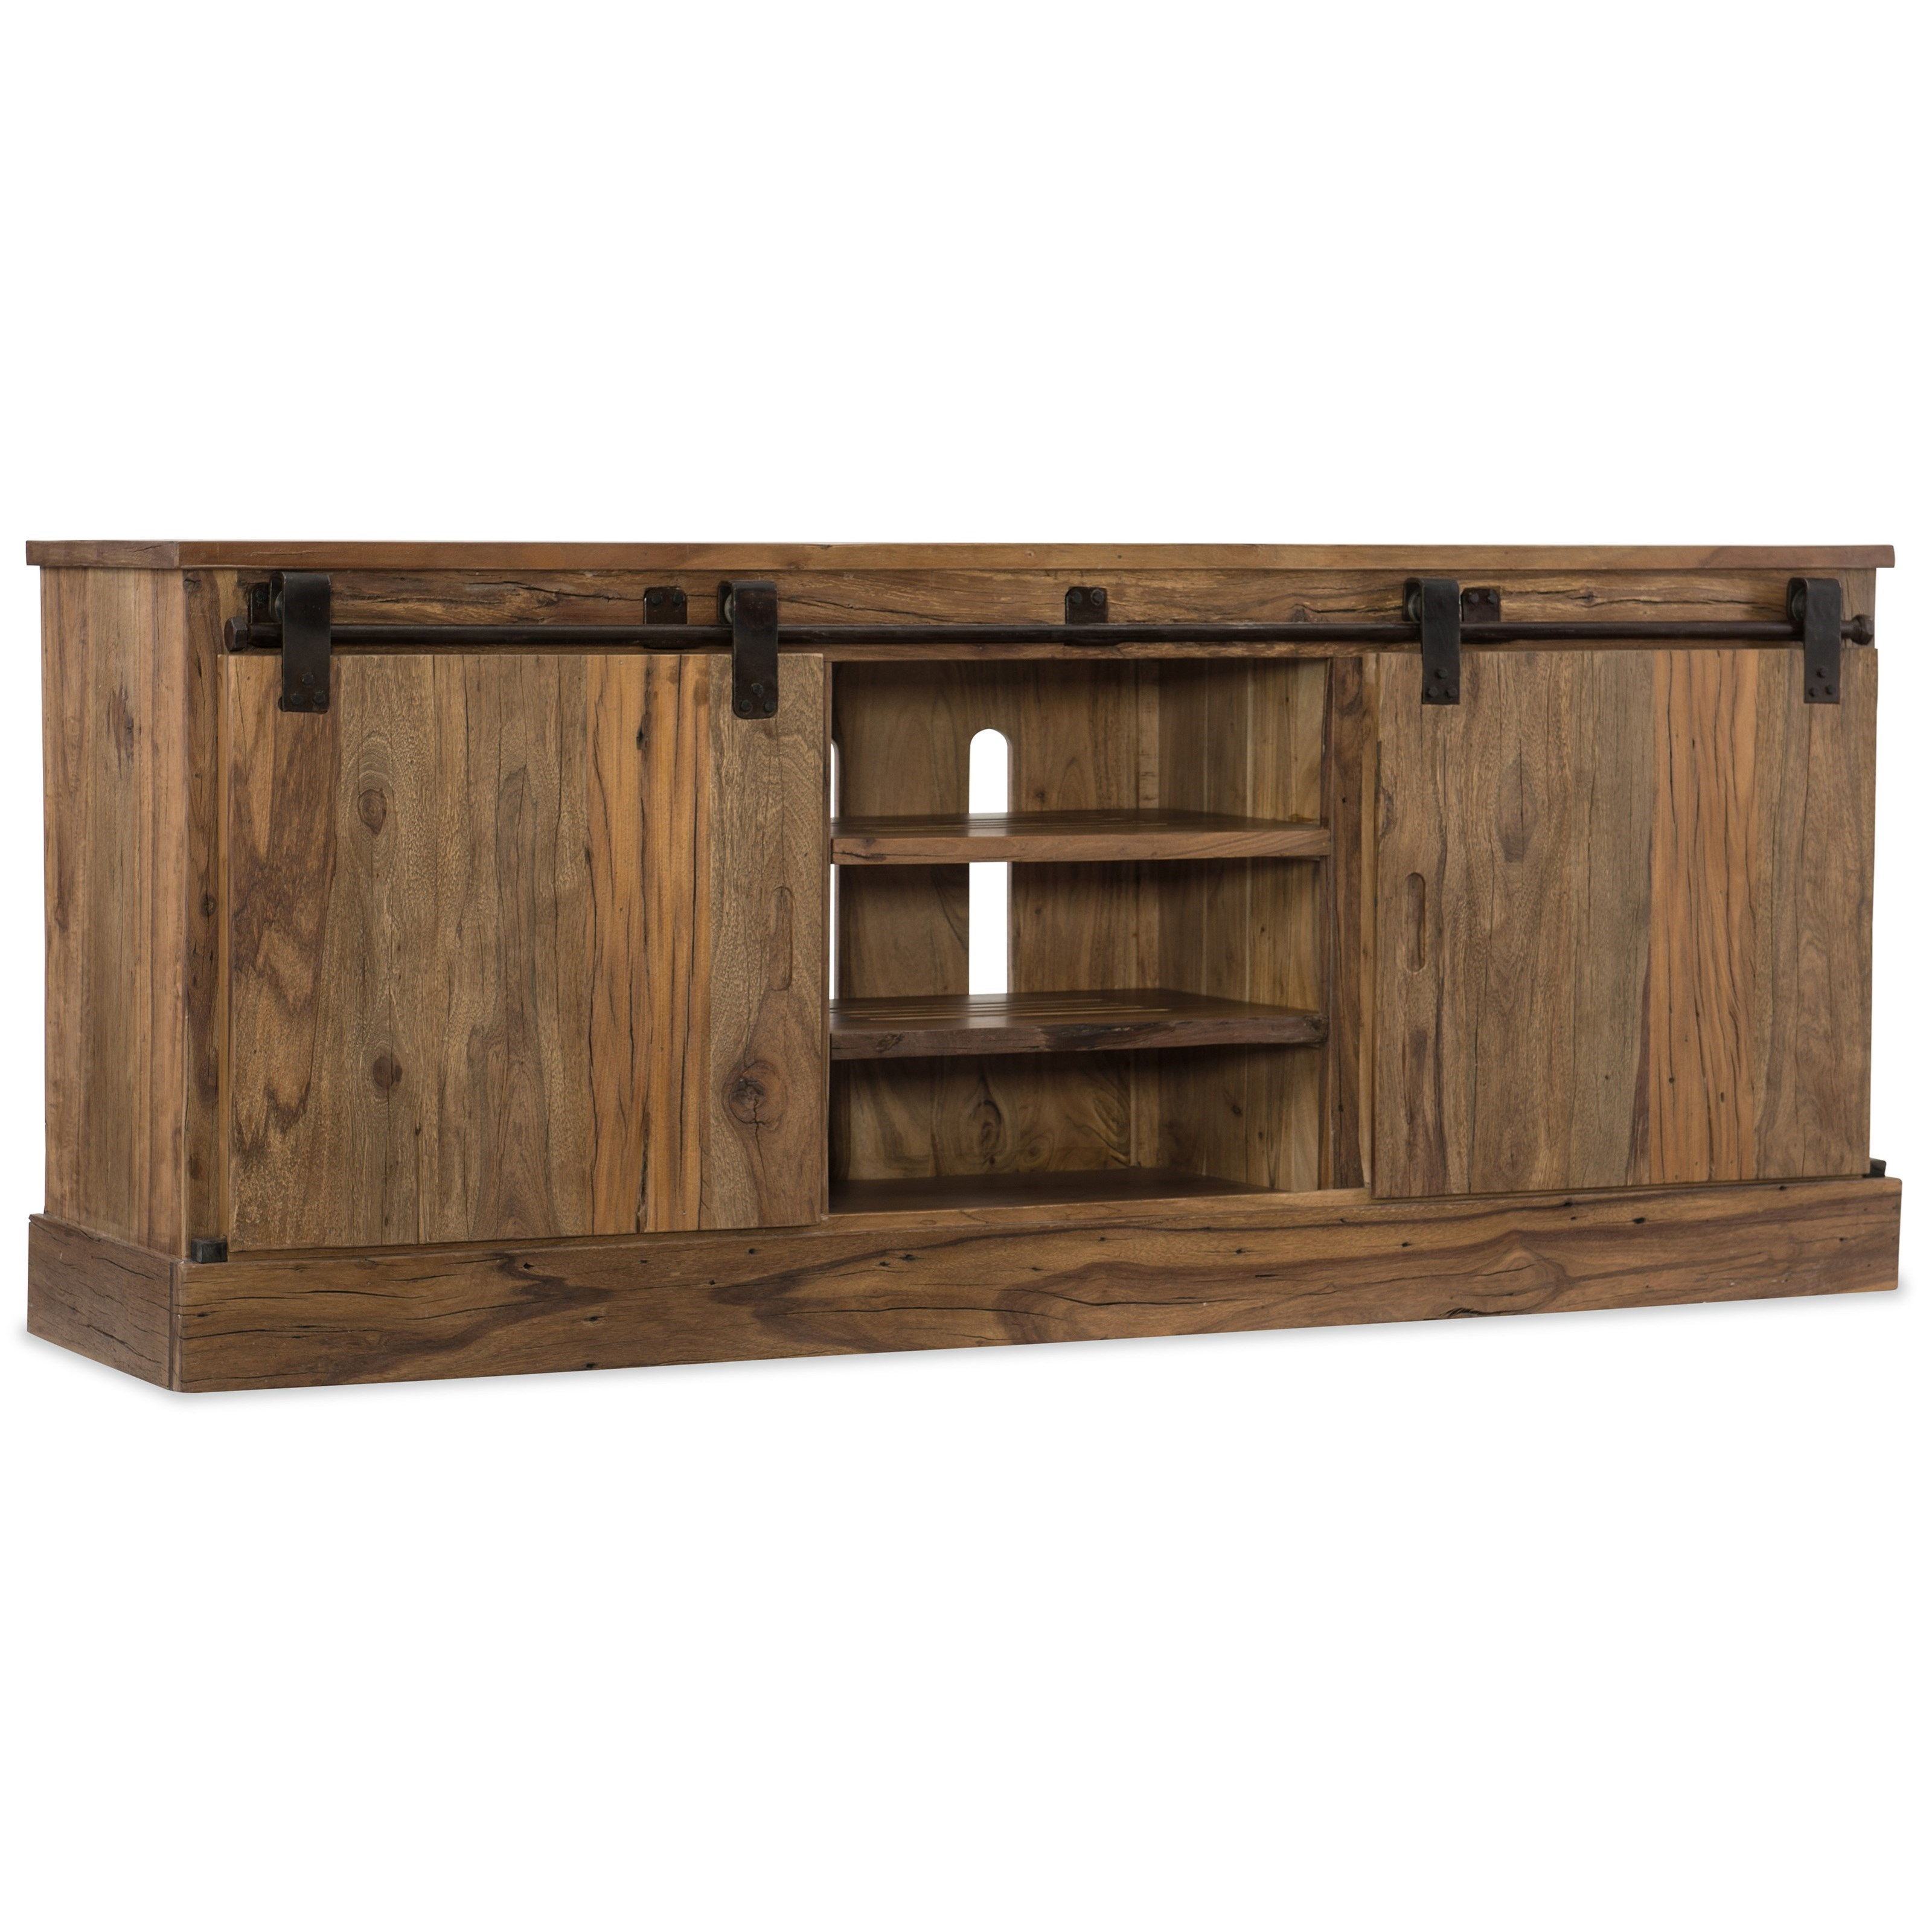 L'Usine Entertainment Console by Hooker Furniture at Baer's Furniture